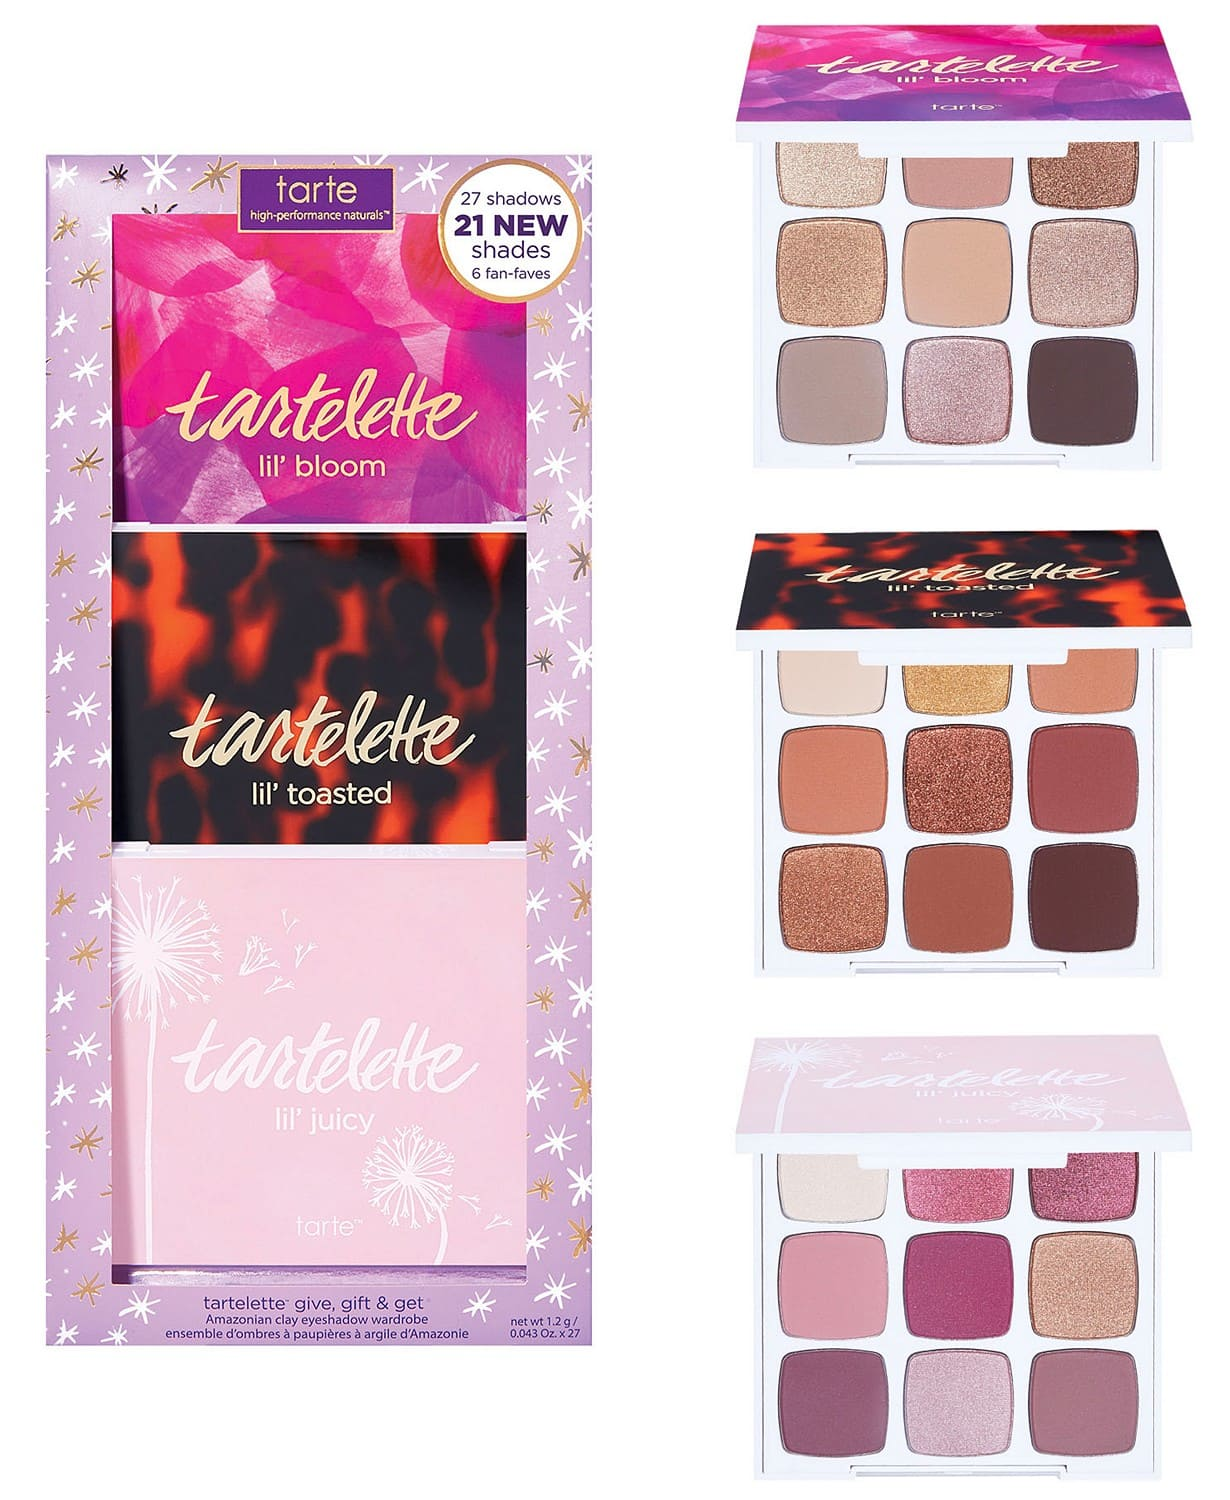 3-Pc Tarte Tartelette Give, Gift & Get Amazonian Clay Eyeshadow Set $29.40 + Free Shipping